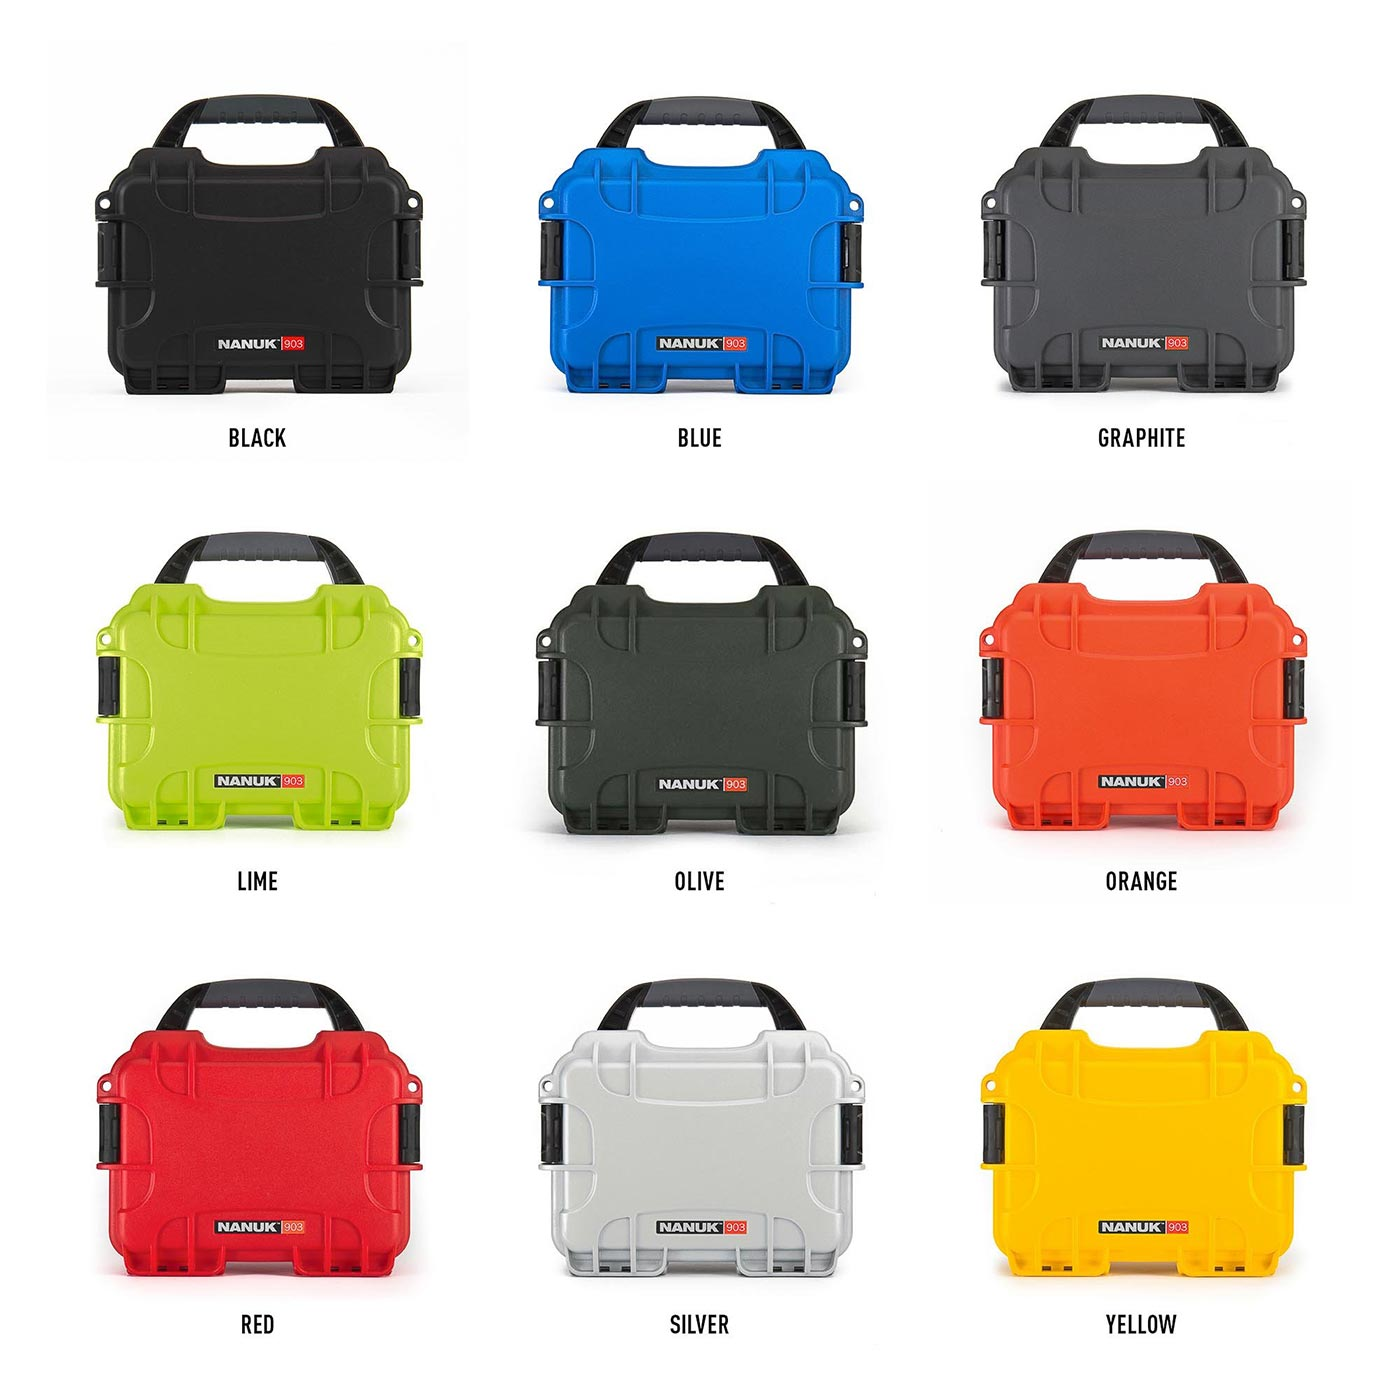 Nanuk 903 is available in 9 colors